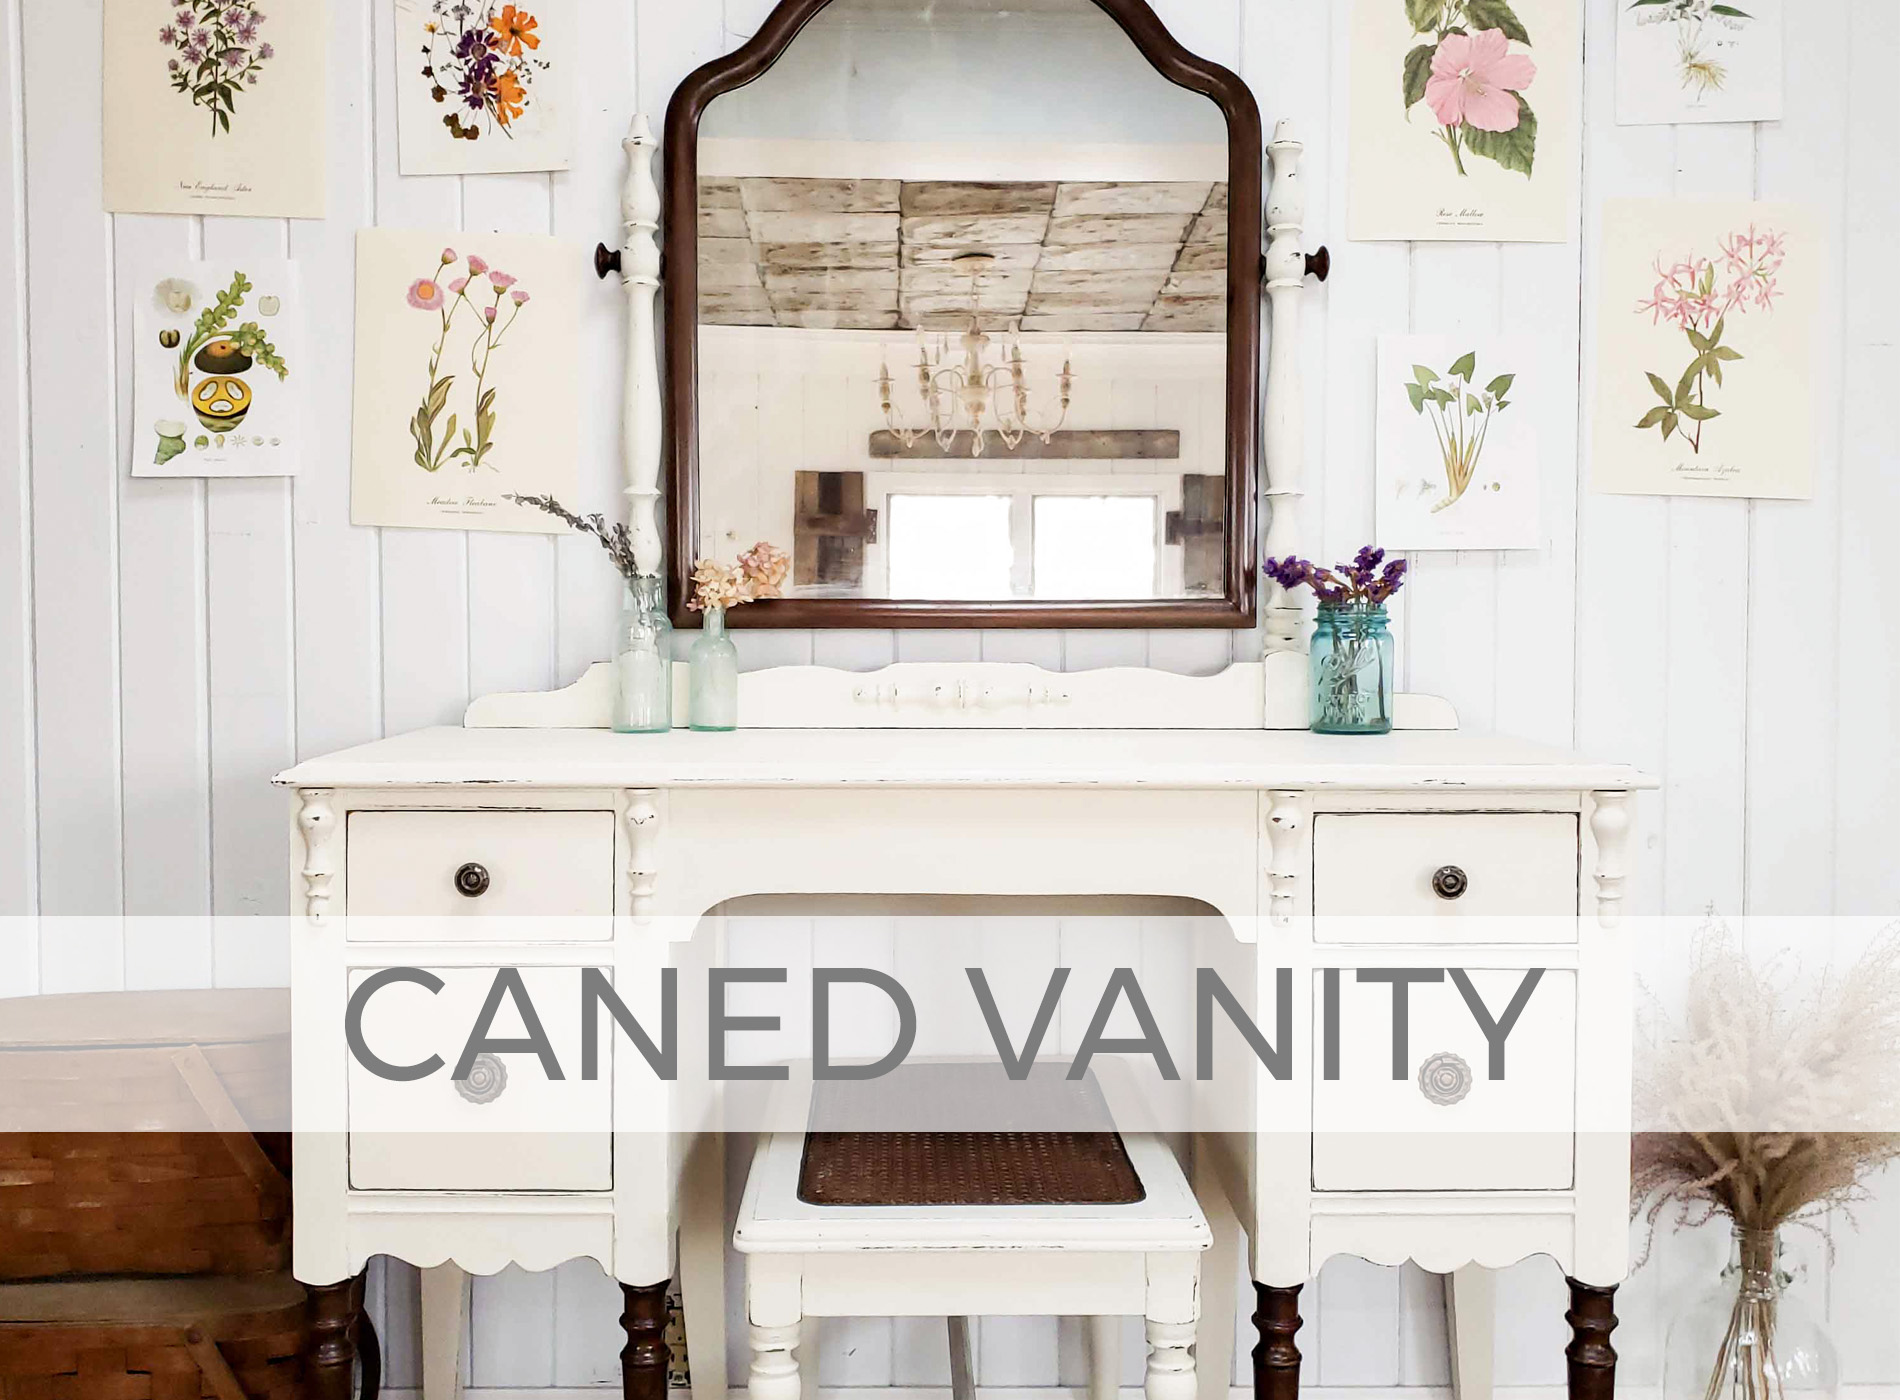 Antique Vanity with Caned Bench by Larissa of Prodigal Pieces | prodigalpieces.com #prodigalpieces #diy #furniture #farmhouse